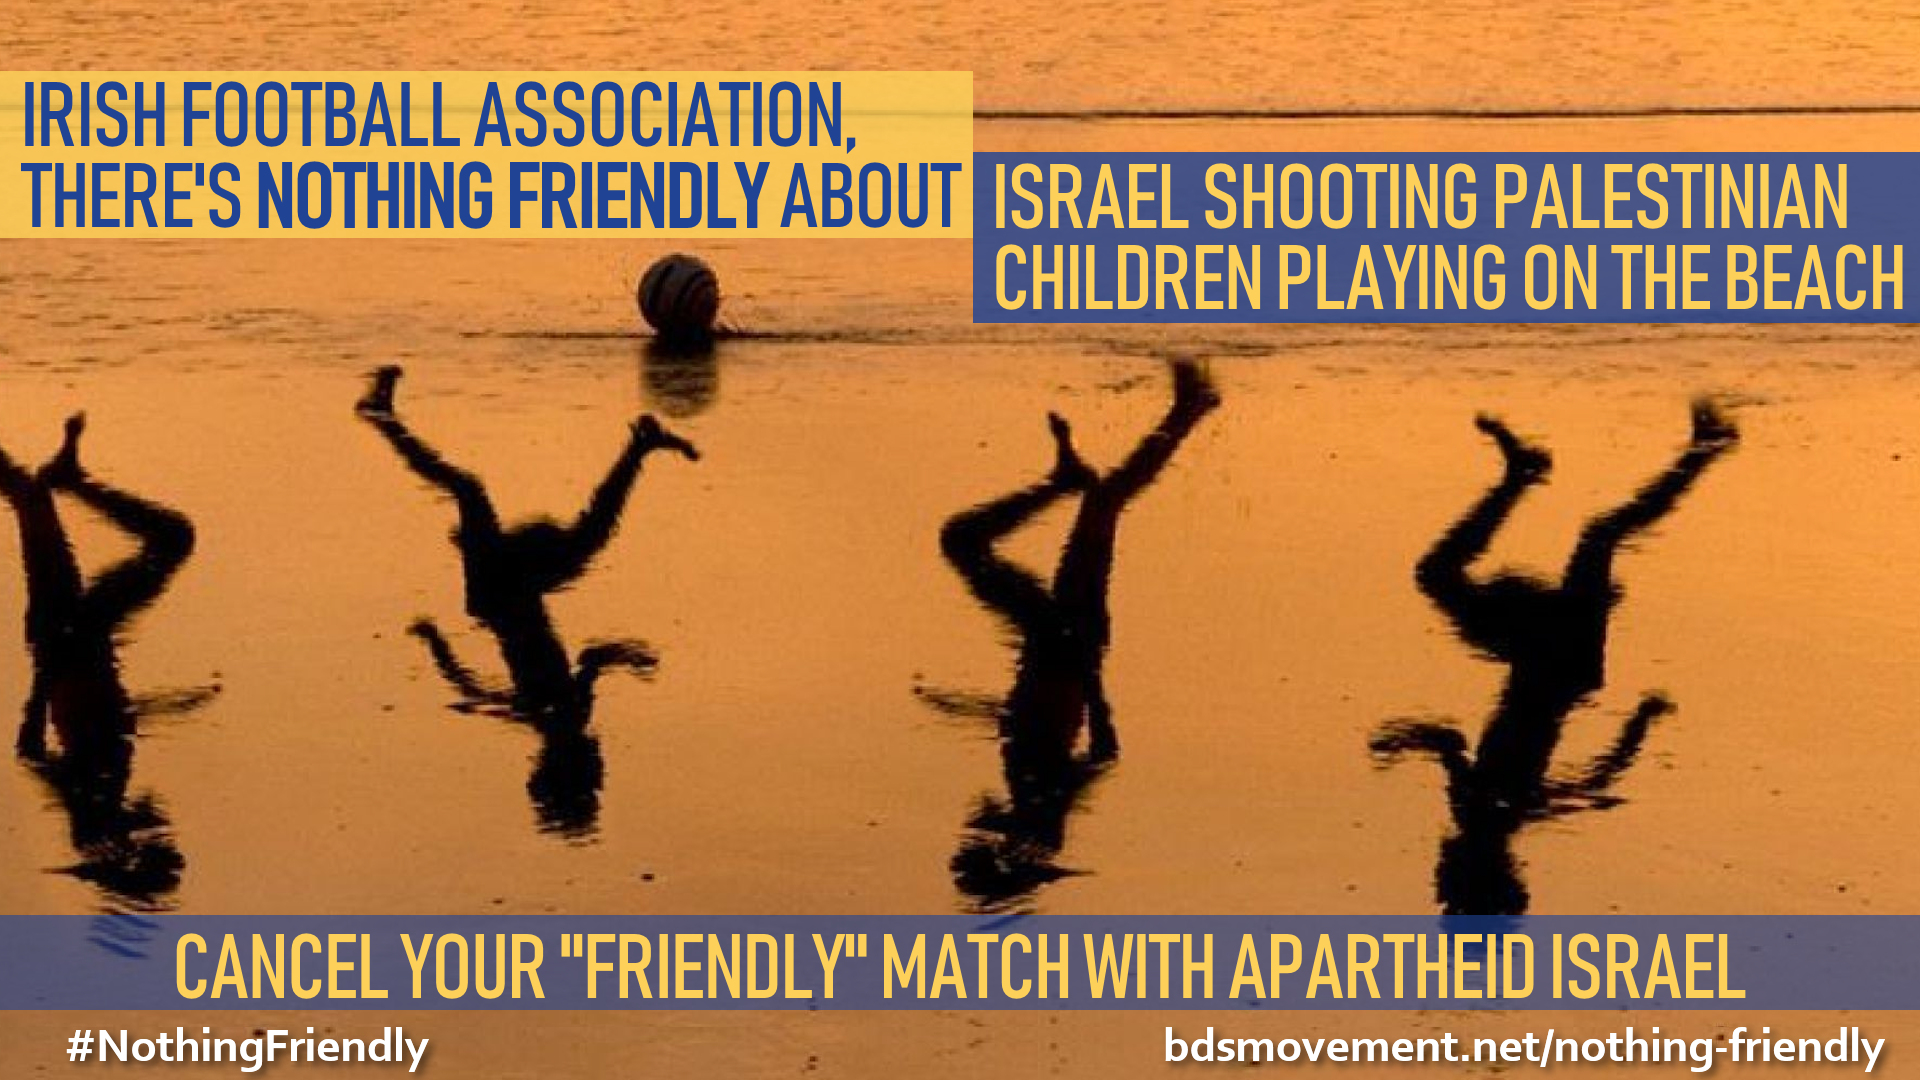 Irish Football Assoc, there's nothing friendly about shooting Palestinian children playing football on the beach